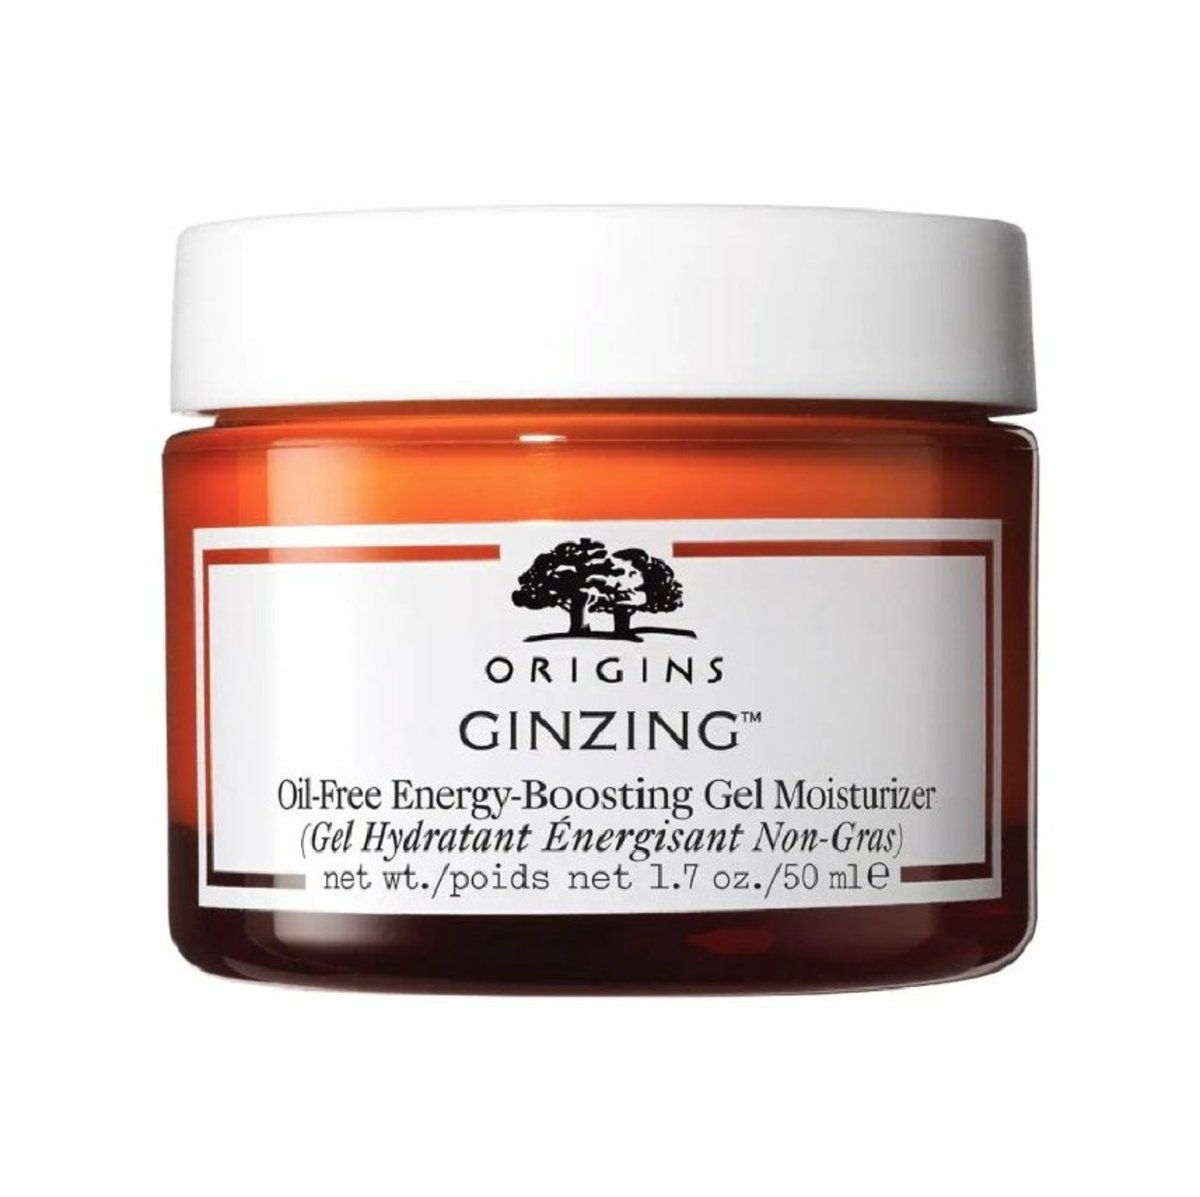 Ginzing Oil Free Energy-Boosting Gel Moisturizer 50ml (Parallel Import)